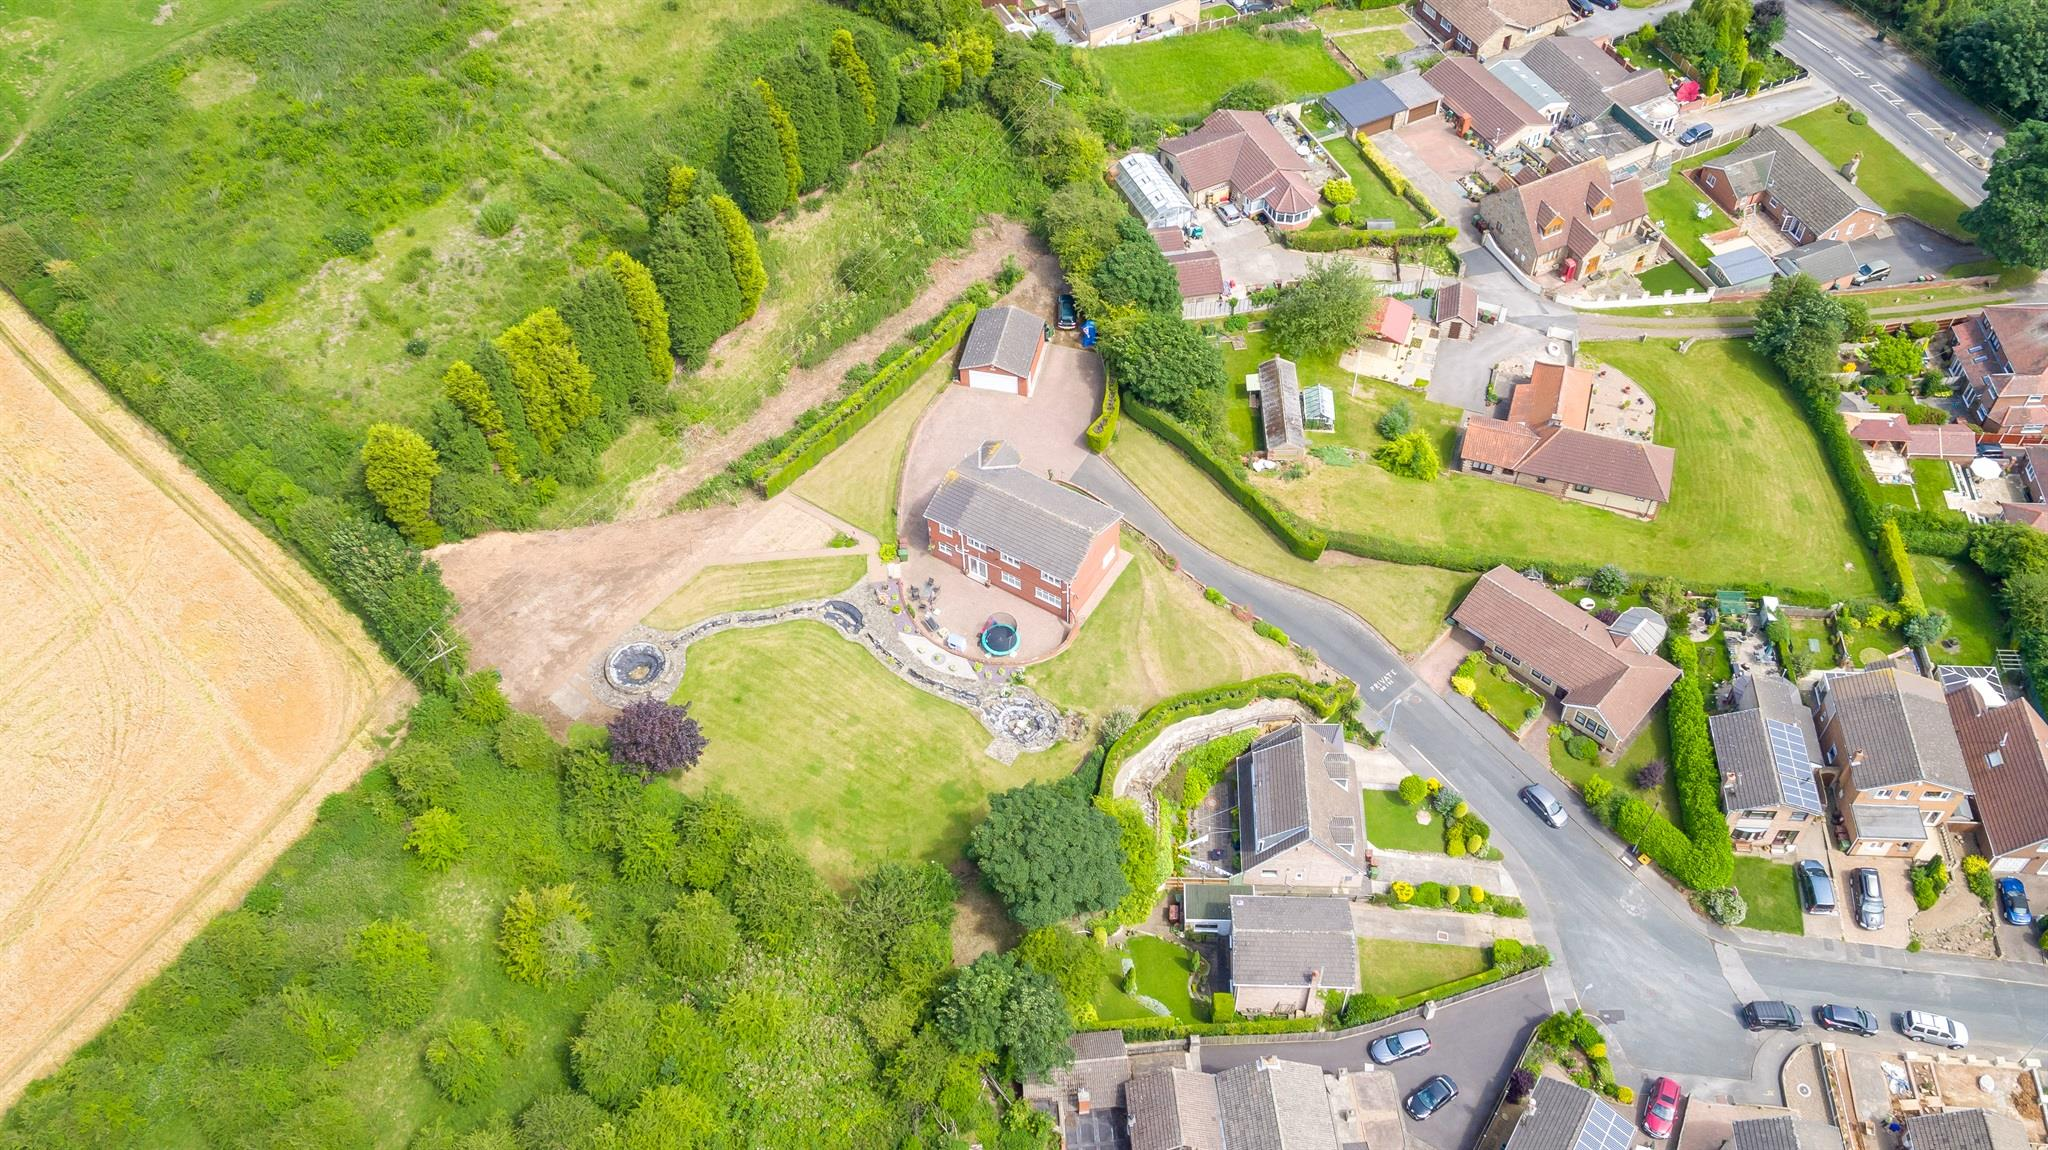 Building Plots For Sale In Pontefract